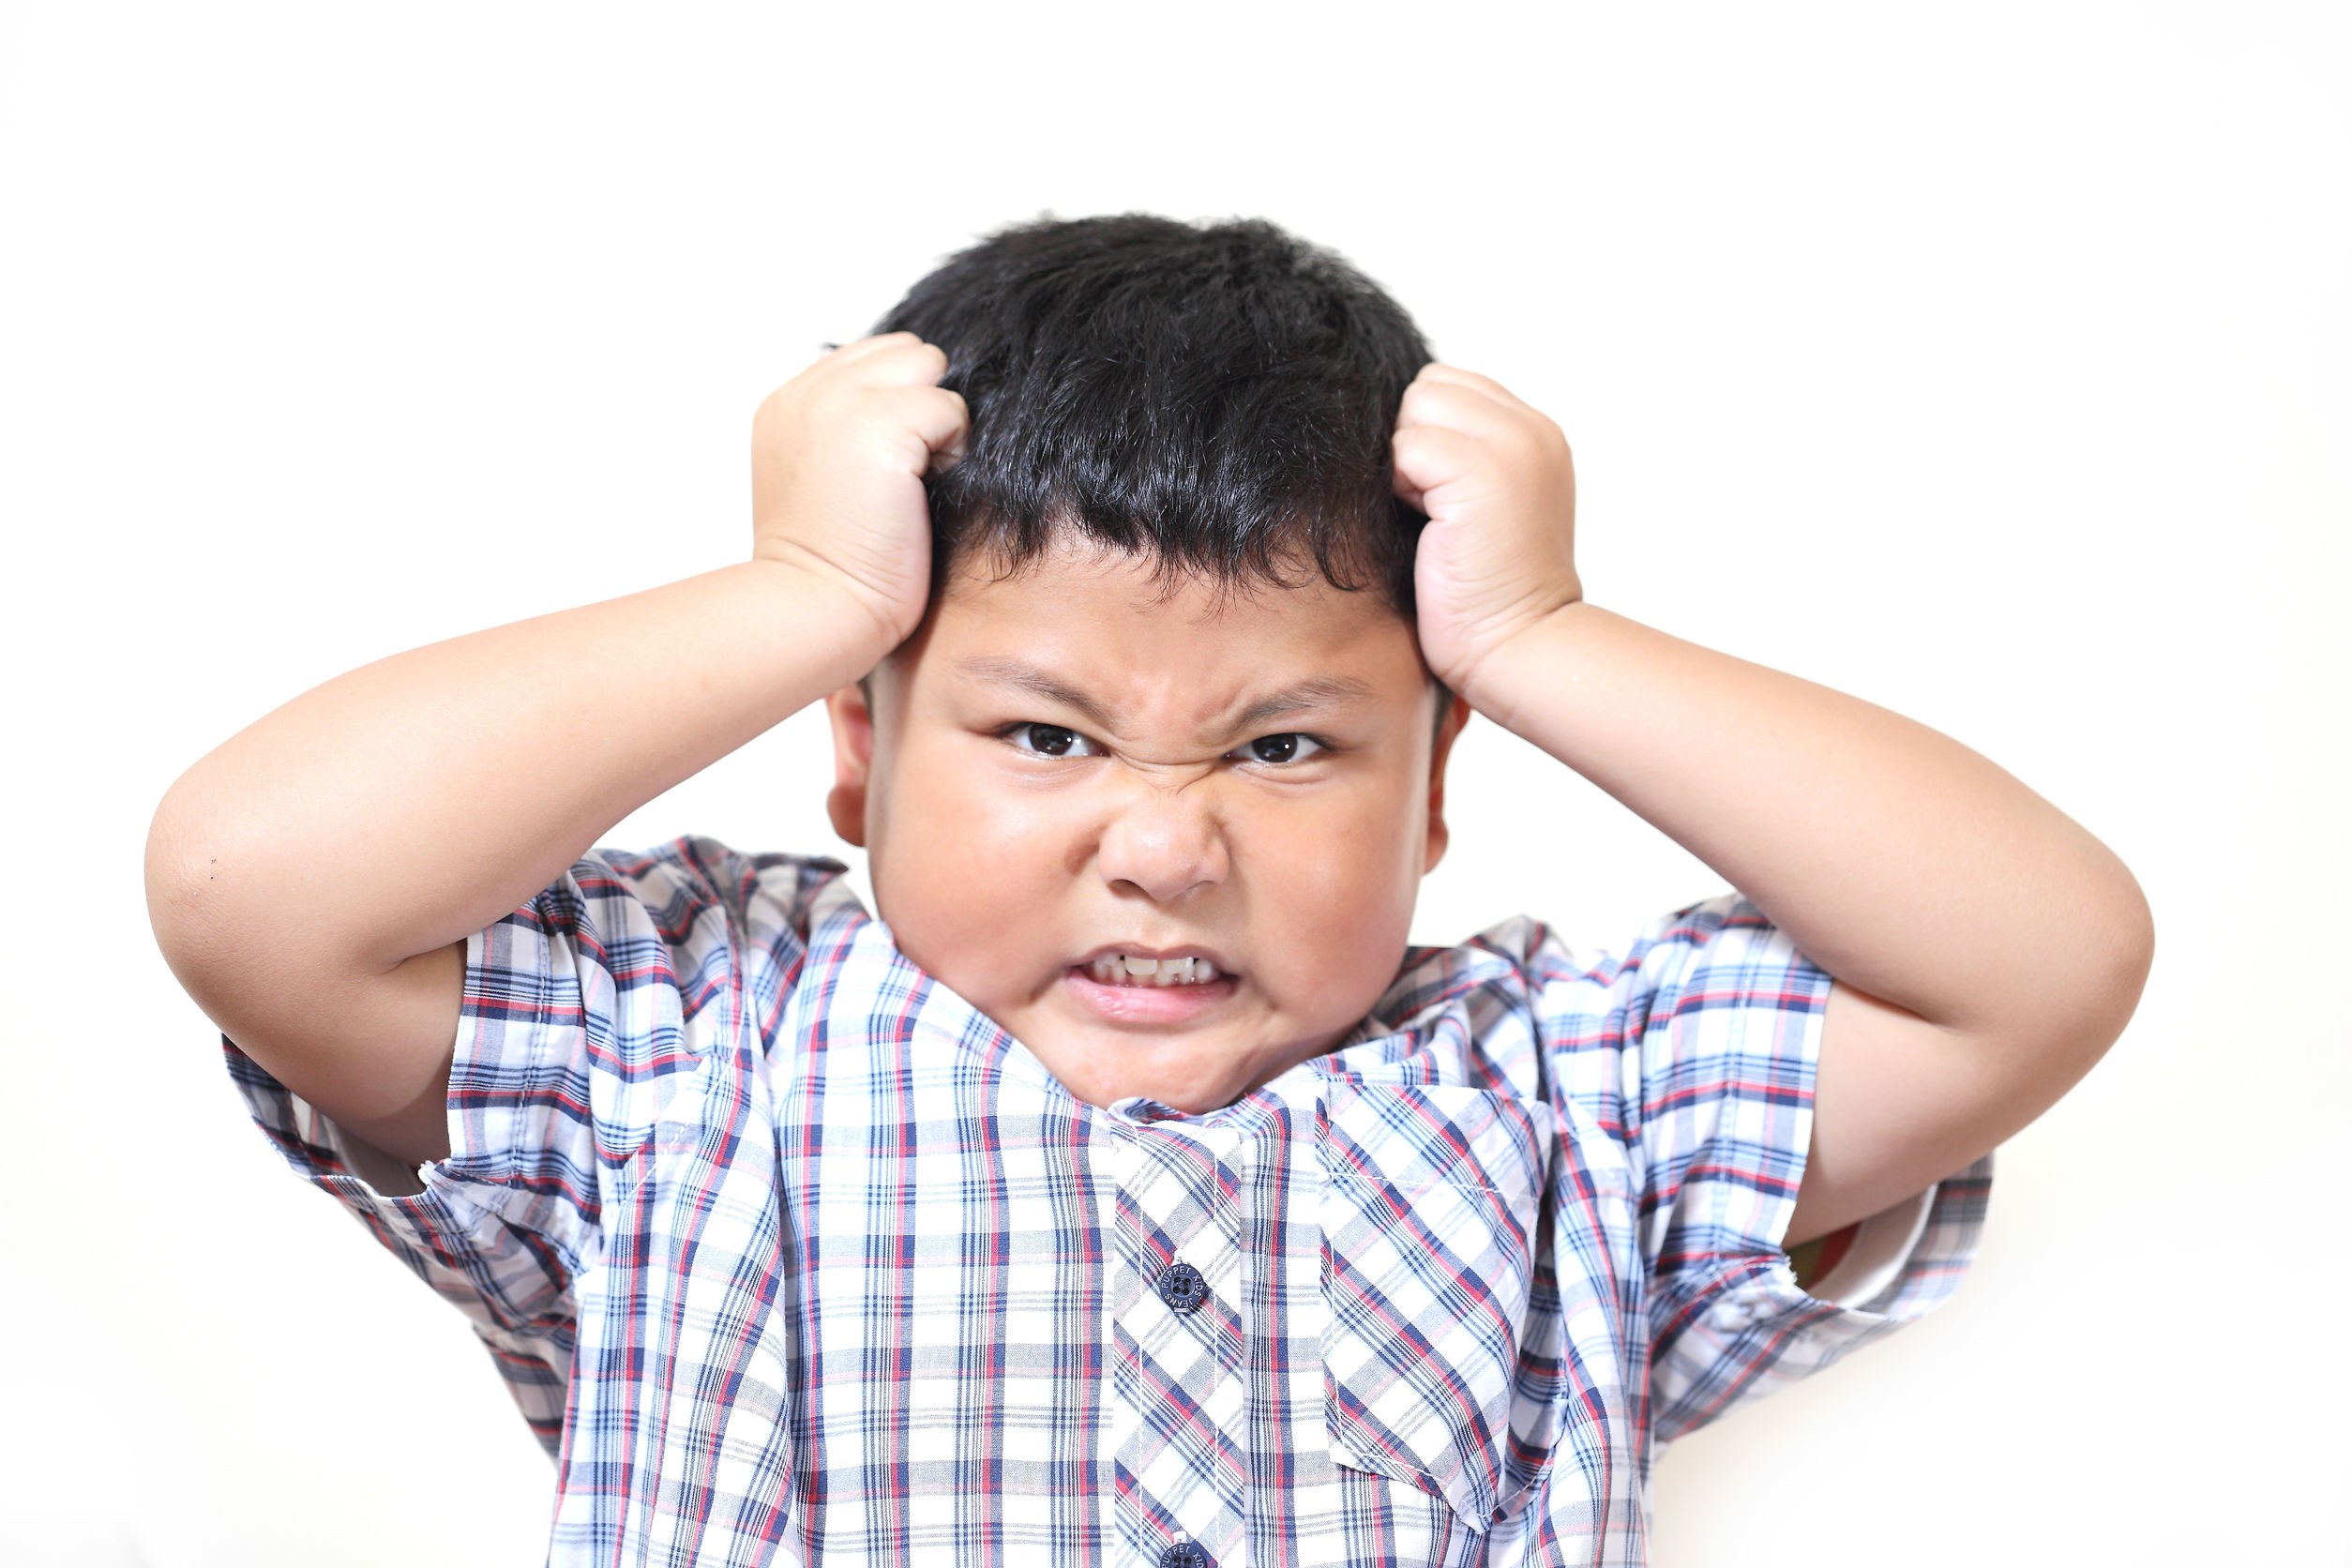 Anger management for adolescents abhhbxek - Helping Children Deal With Anger